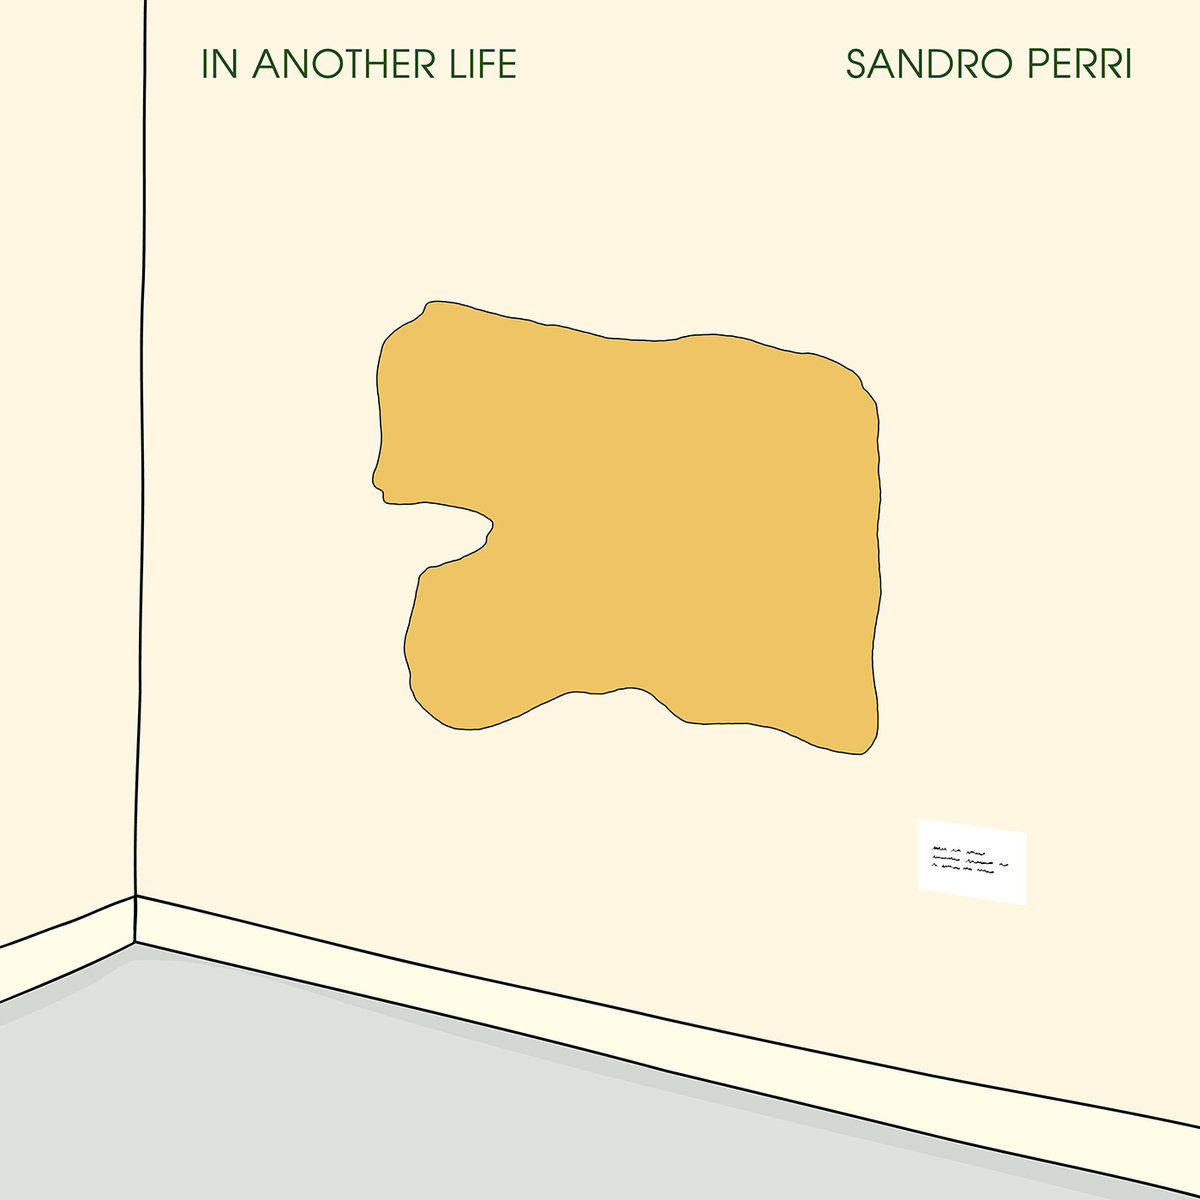 Sandro Perri, In Another Life album art